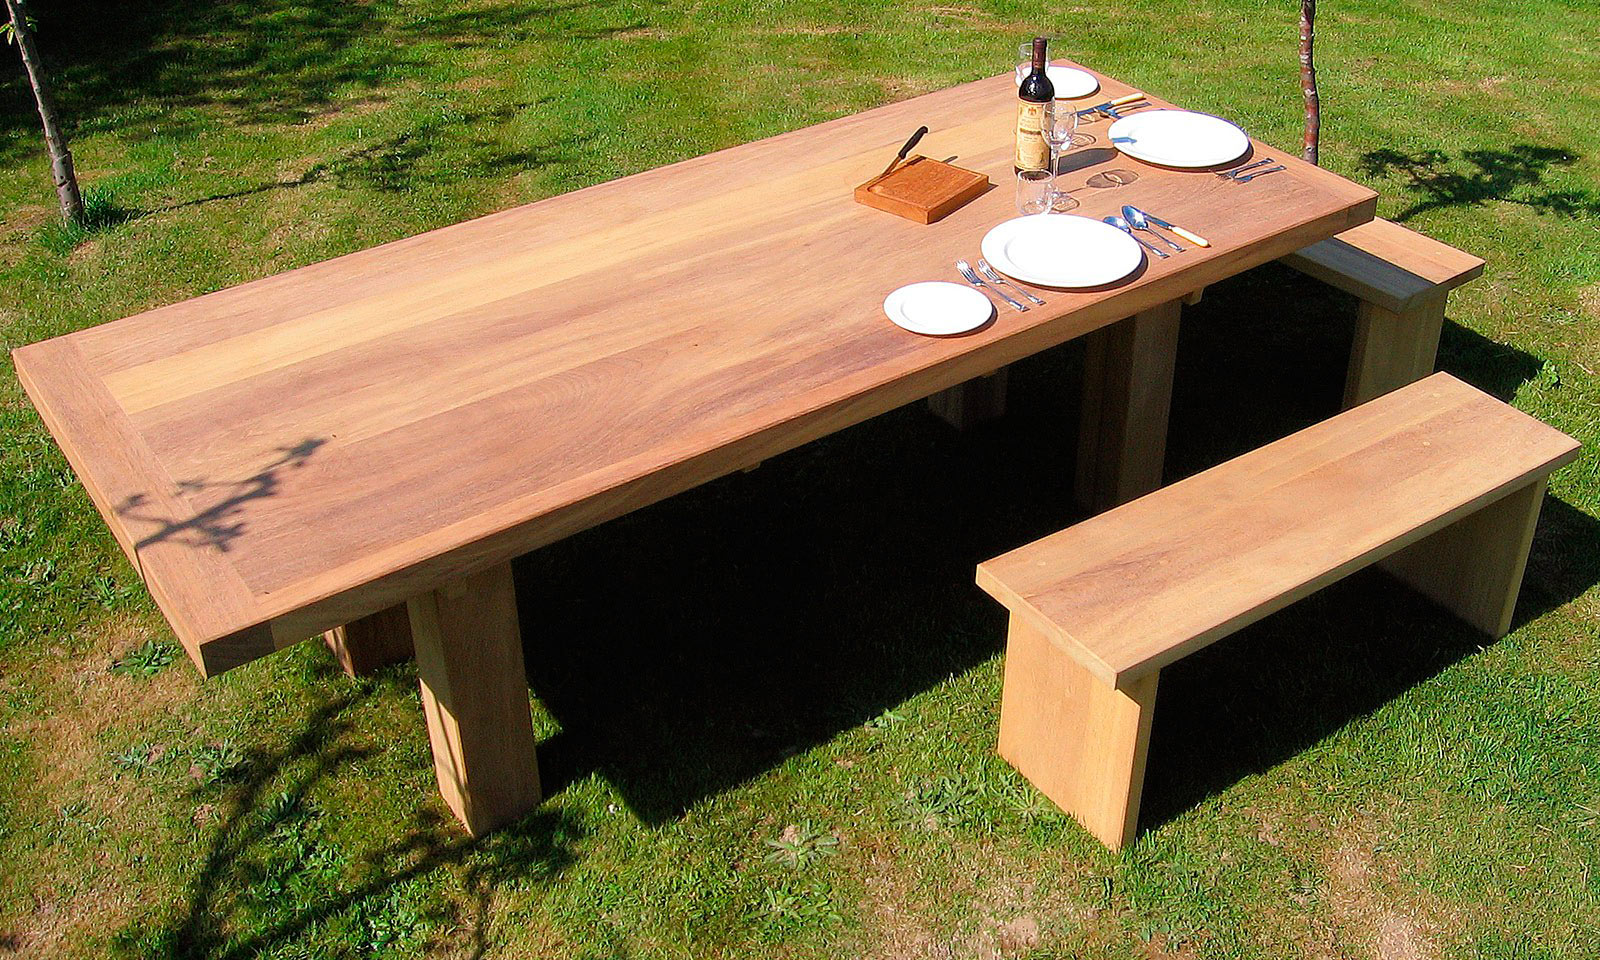 Iroko Table, with two matching bench seats. A bespoke, handmade garden table manufactured out of Iroko hardwood. Quality hand-crafted exterior furniture designed and built by Mounts Hill.